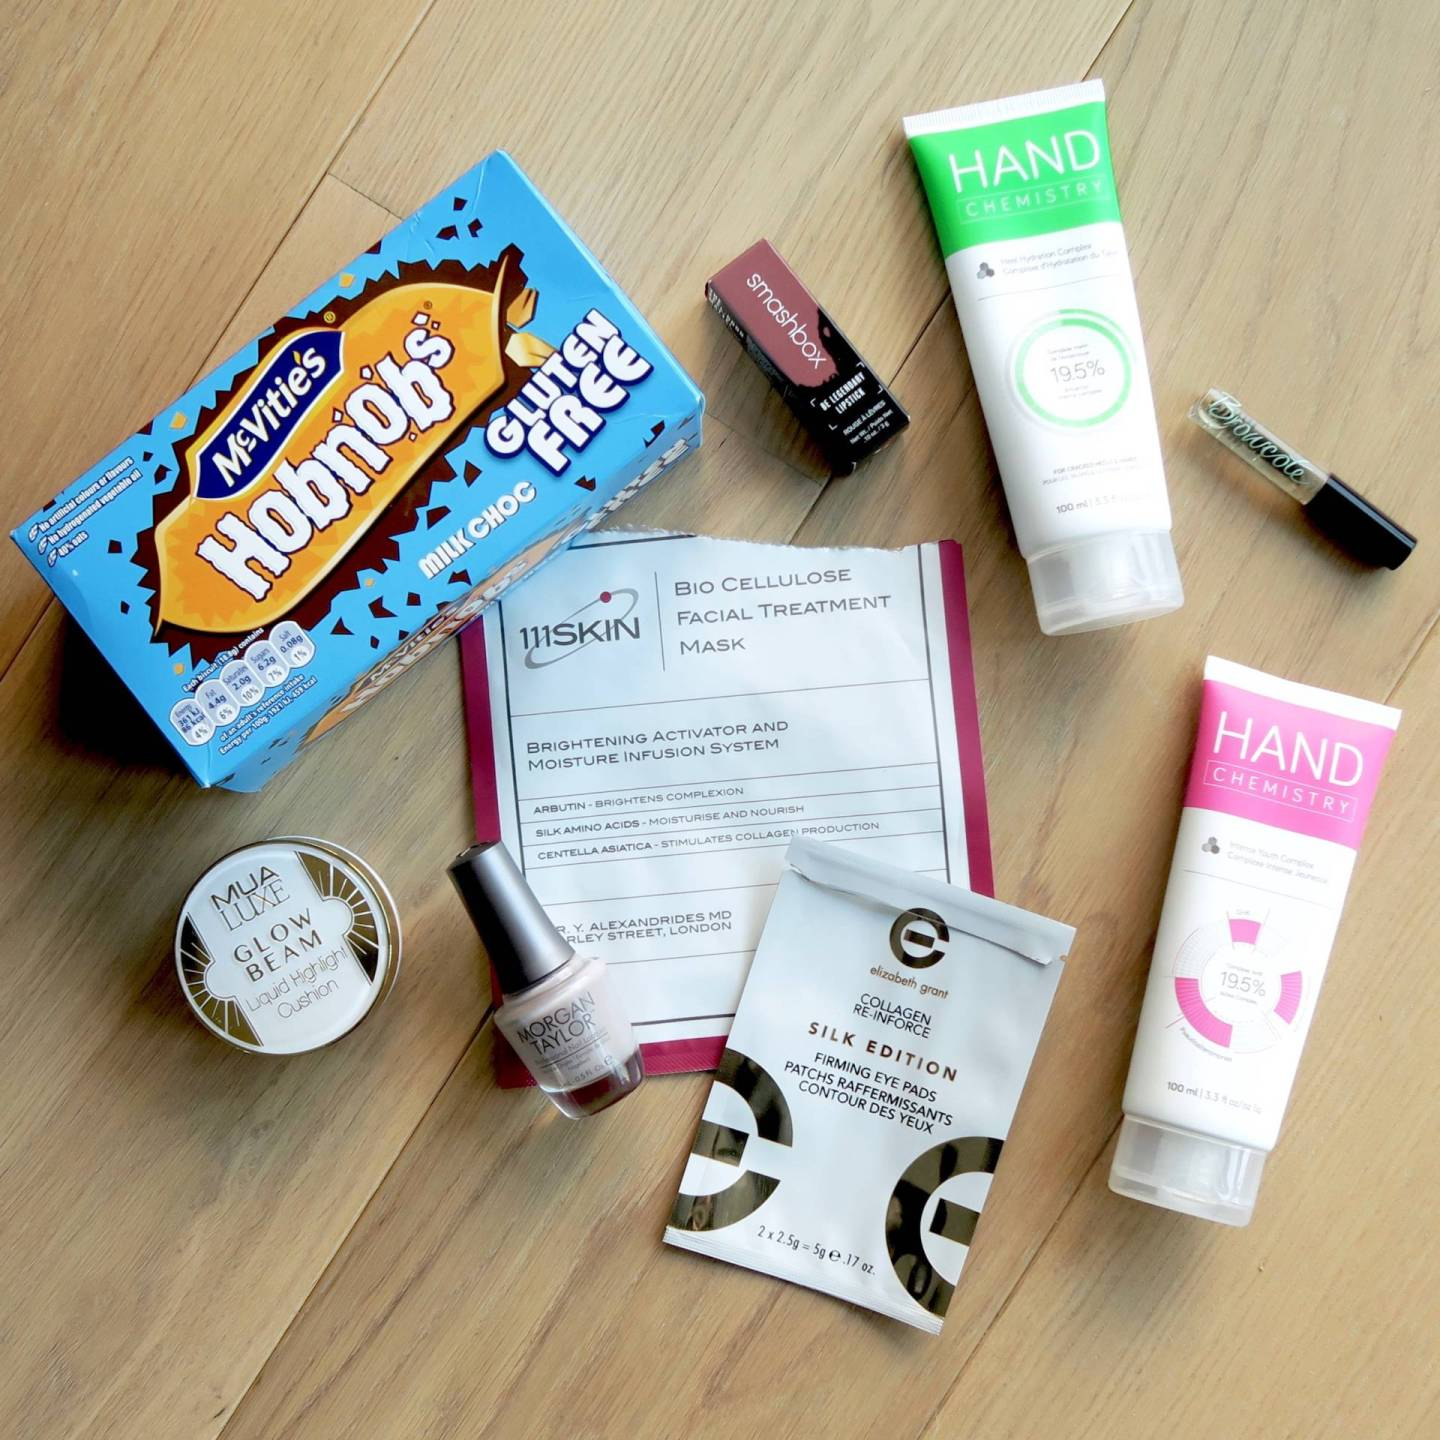 Current Favourites #2: Gluten-free Hobnobs (THE DREAM), my perfect nude lipstick, my holy grail brow gel and some amazing sheet masks.